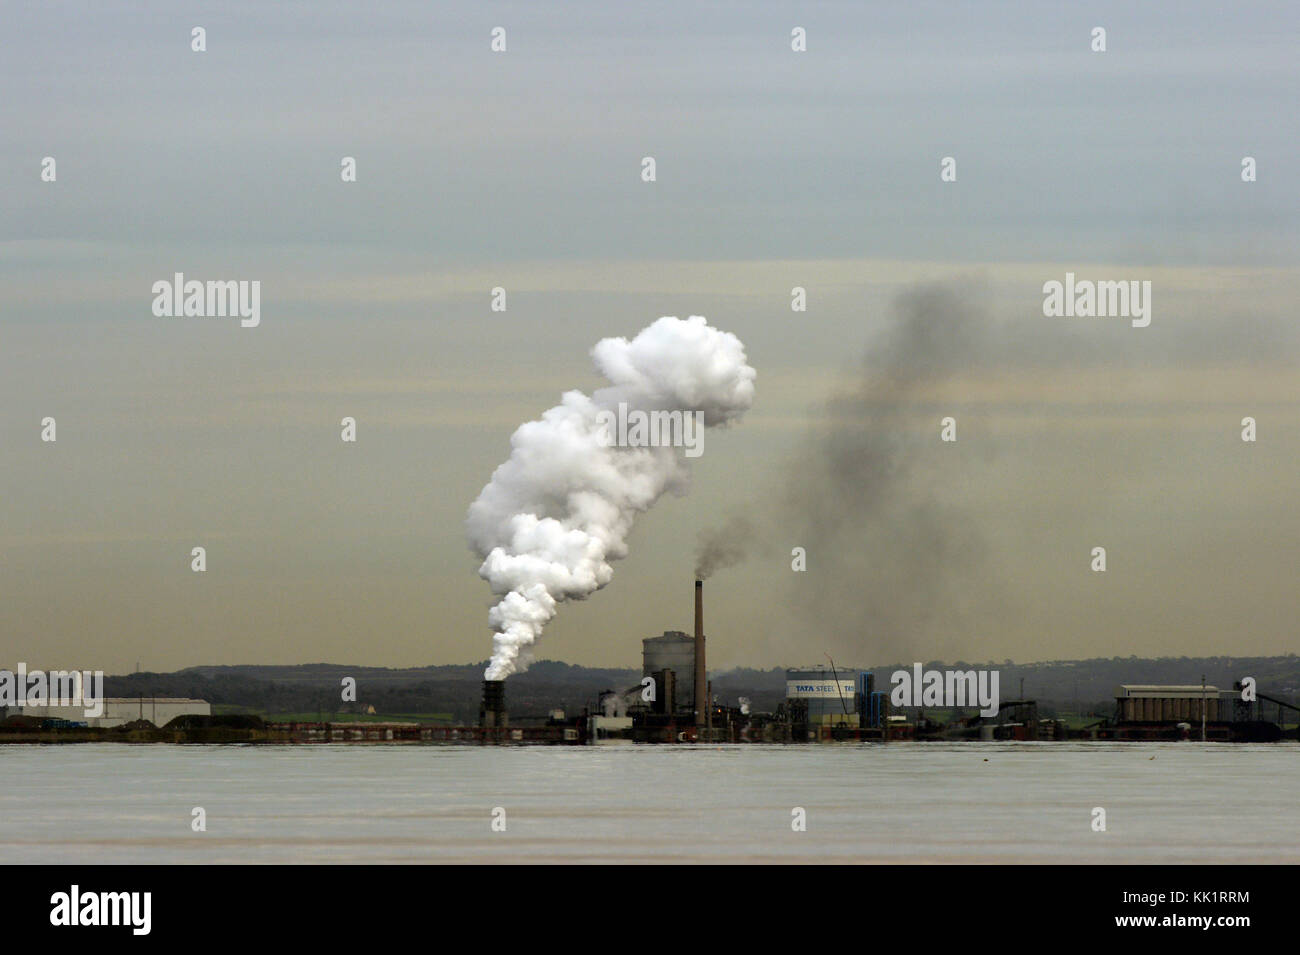 Port Talbot Steel works seen from across Swansea Bay with a telephoto lens Stock Photo